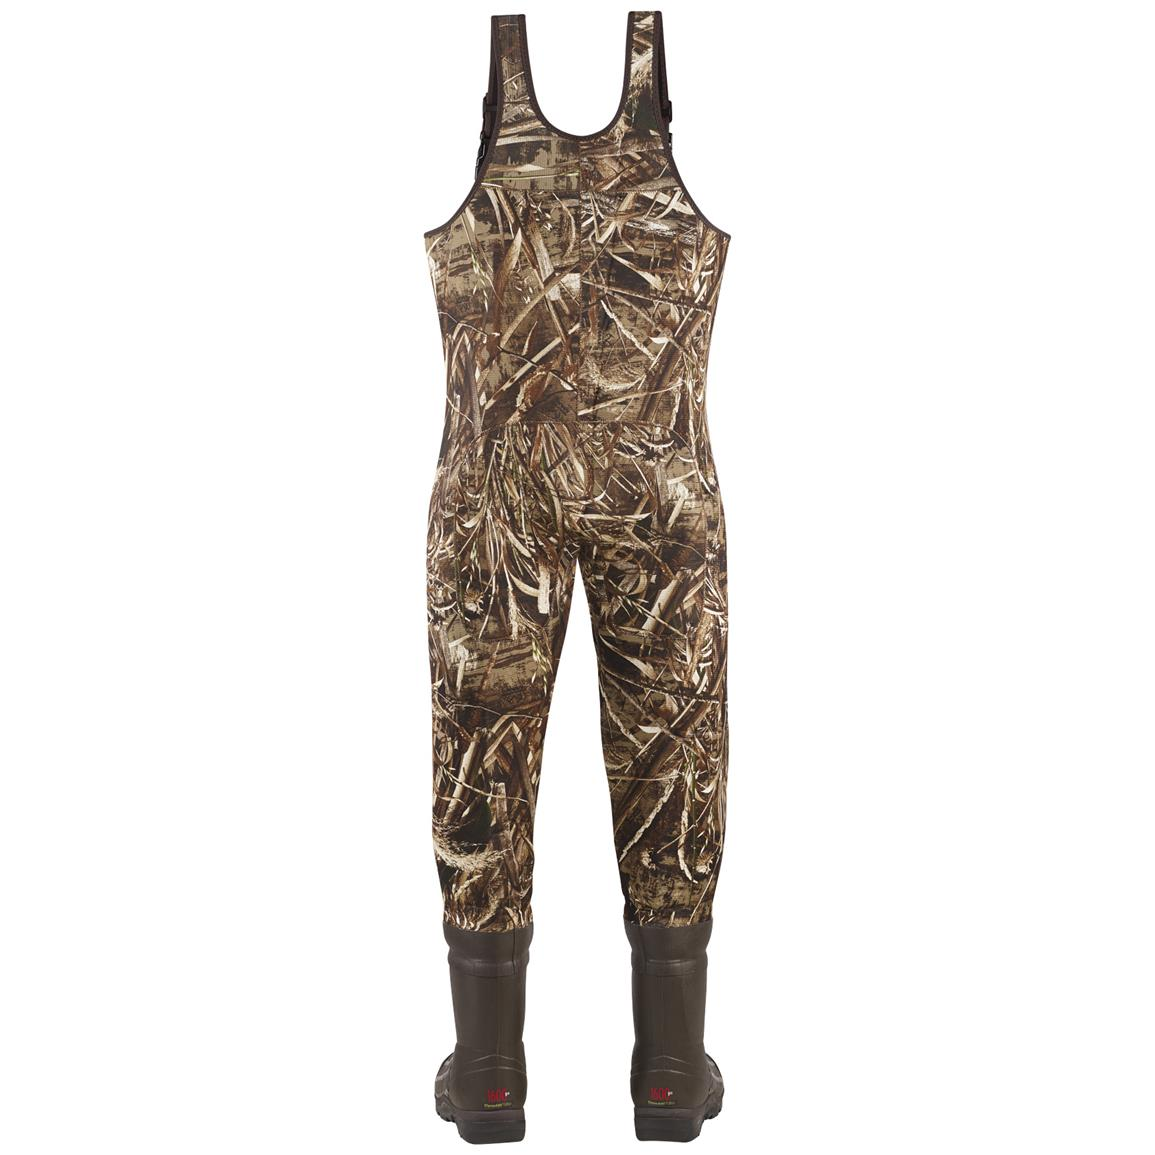 Men's Lacrosse 1,600 Gram Thinsulate Ultra Swamp Tuff Pro Waders, Realtree MAX-5® Camo - Back view